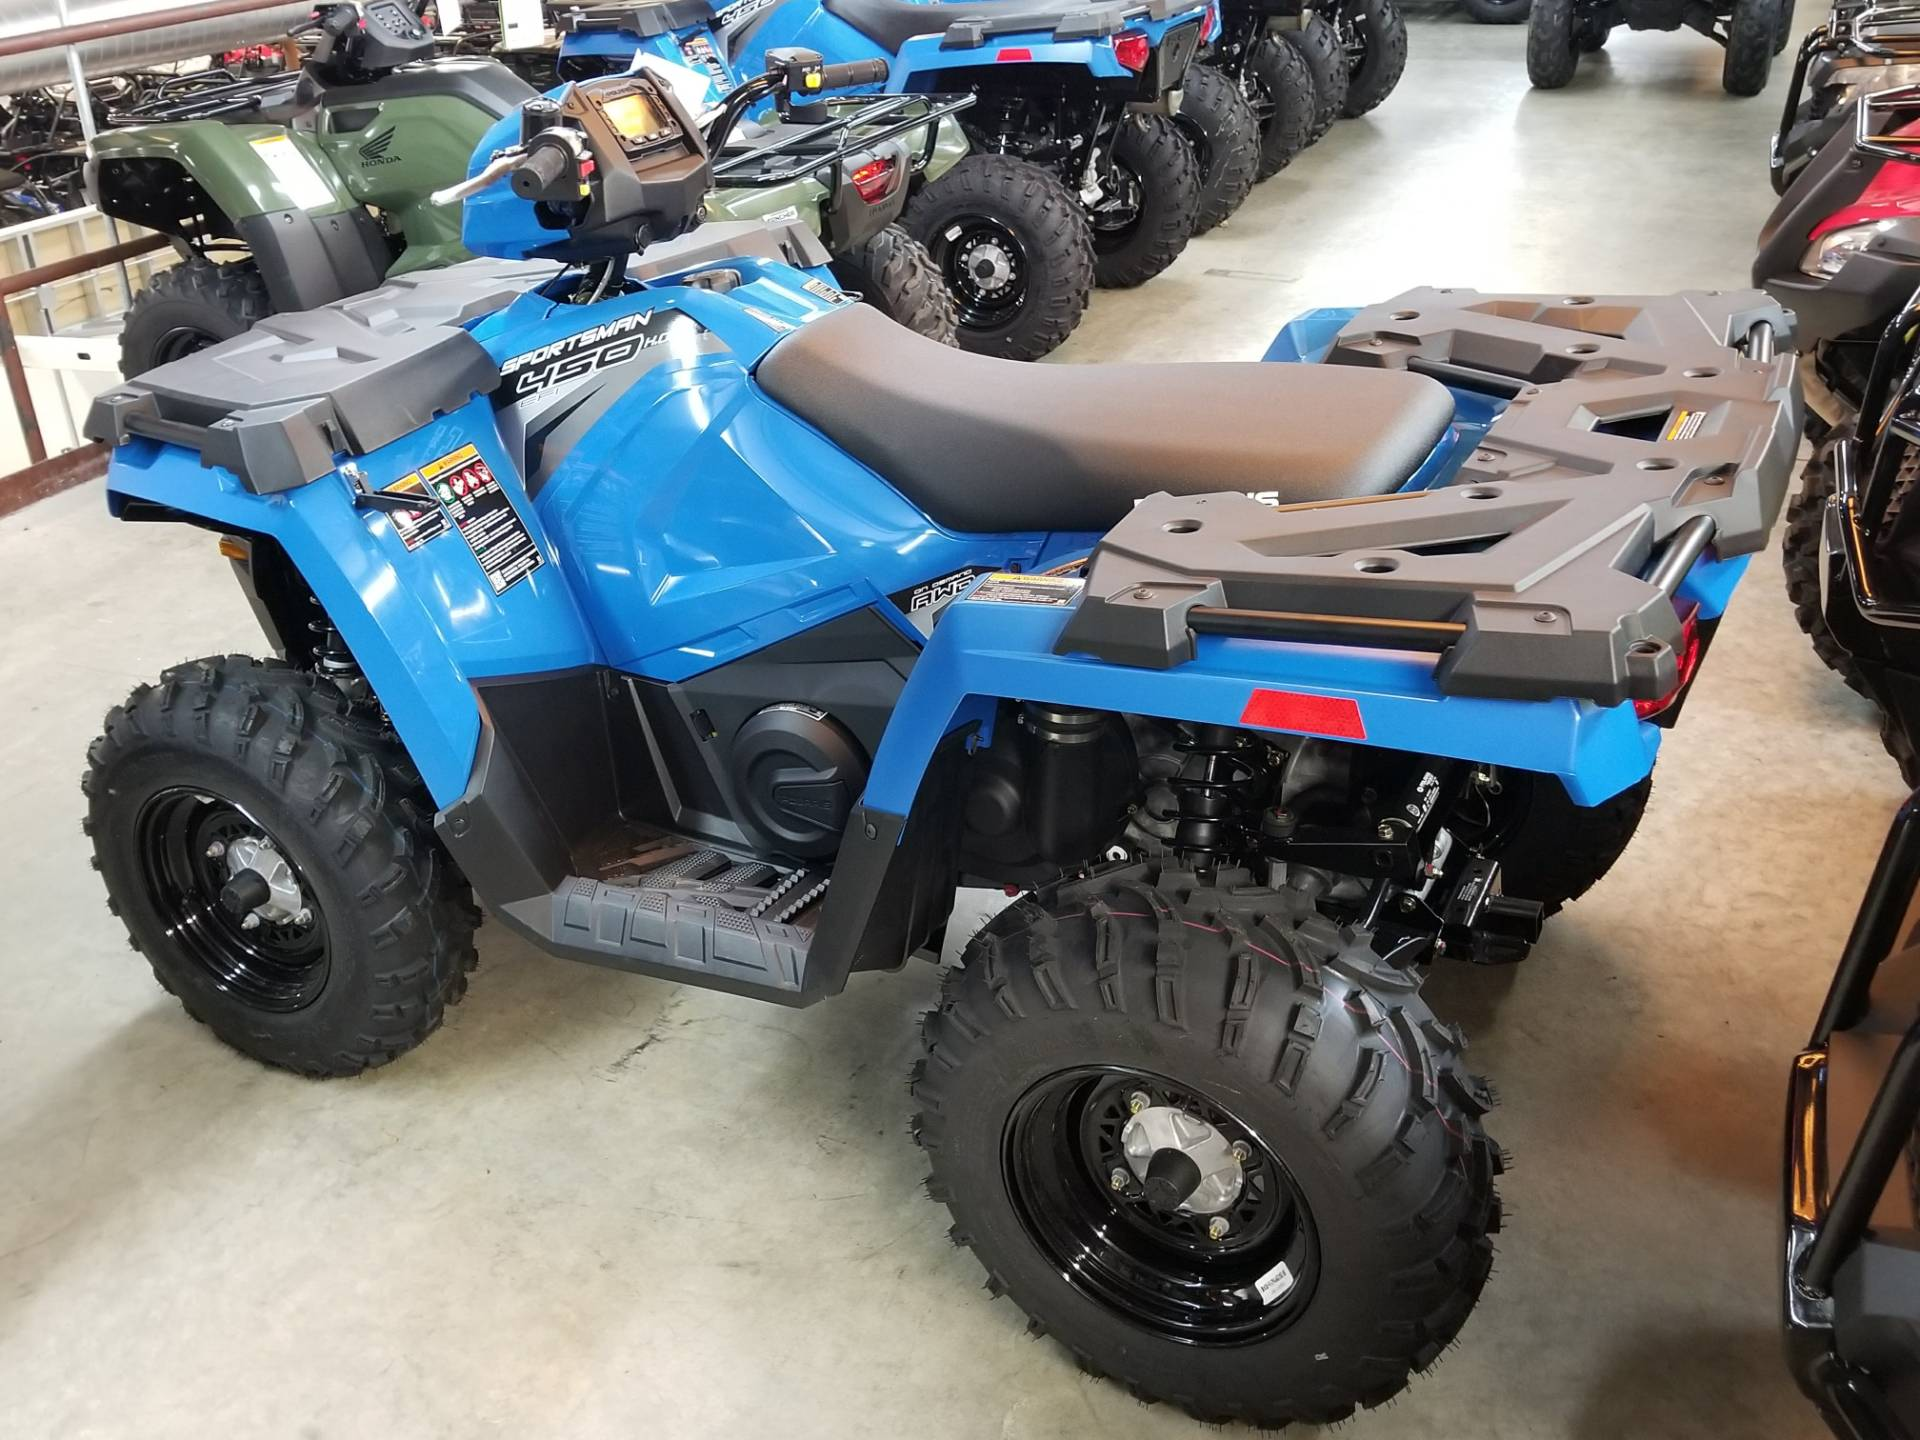 2018 Polaris Sportsman 450 H.O. in Statesville, North Carolina